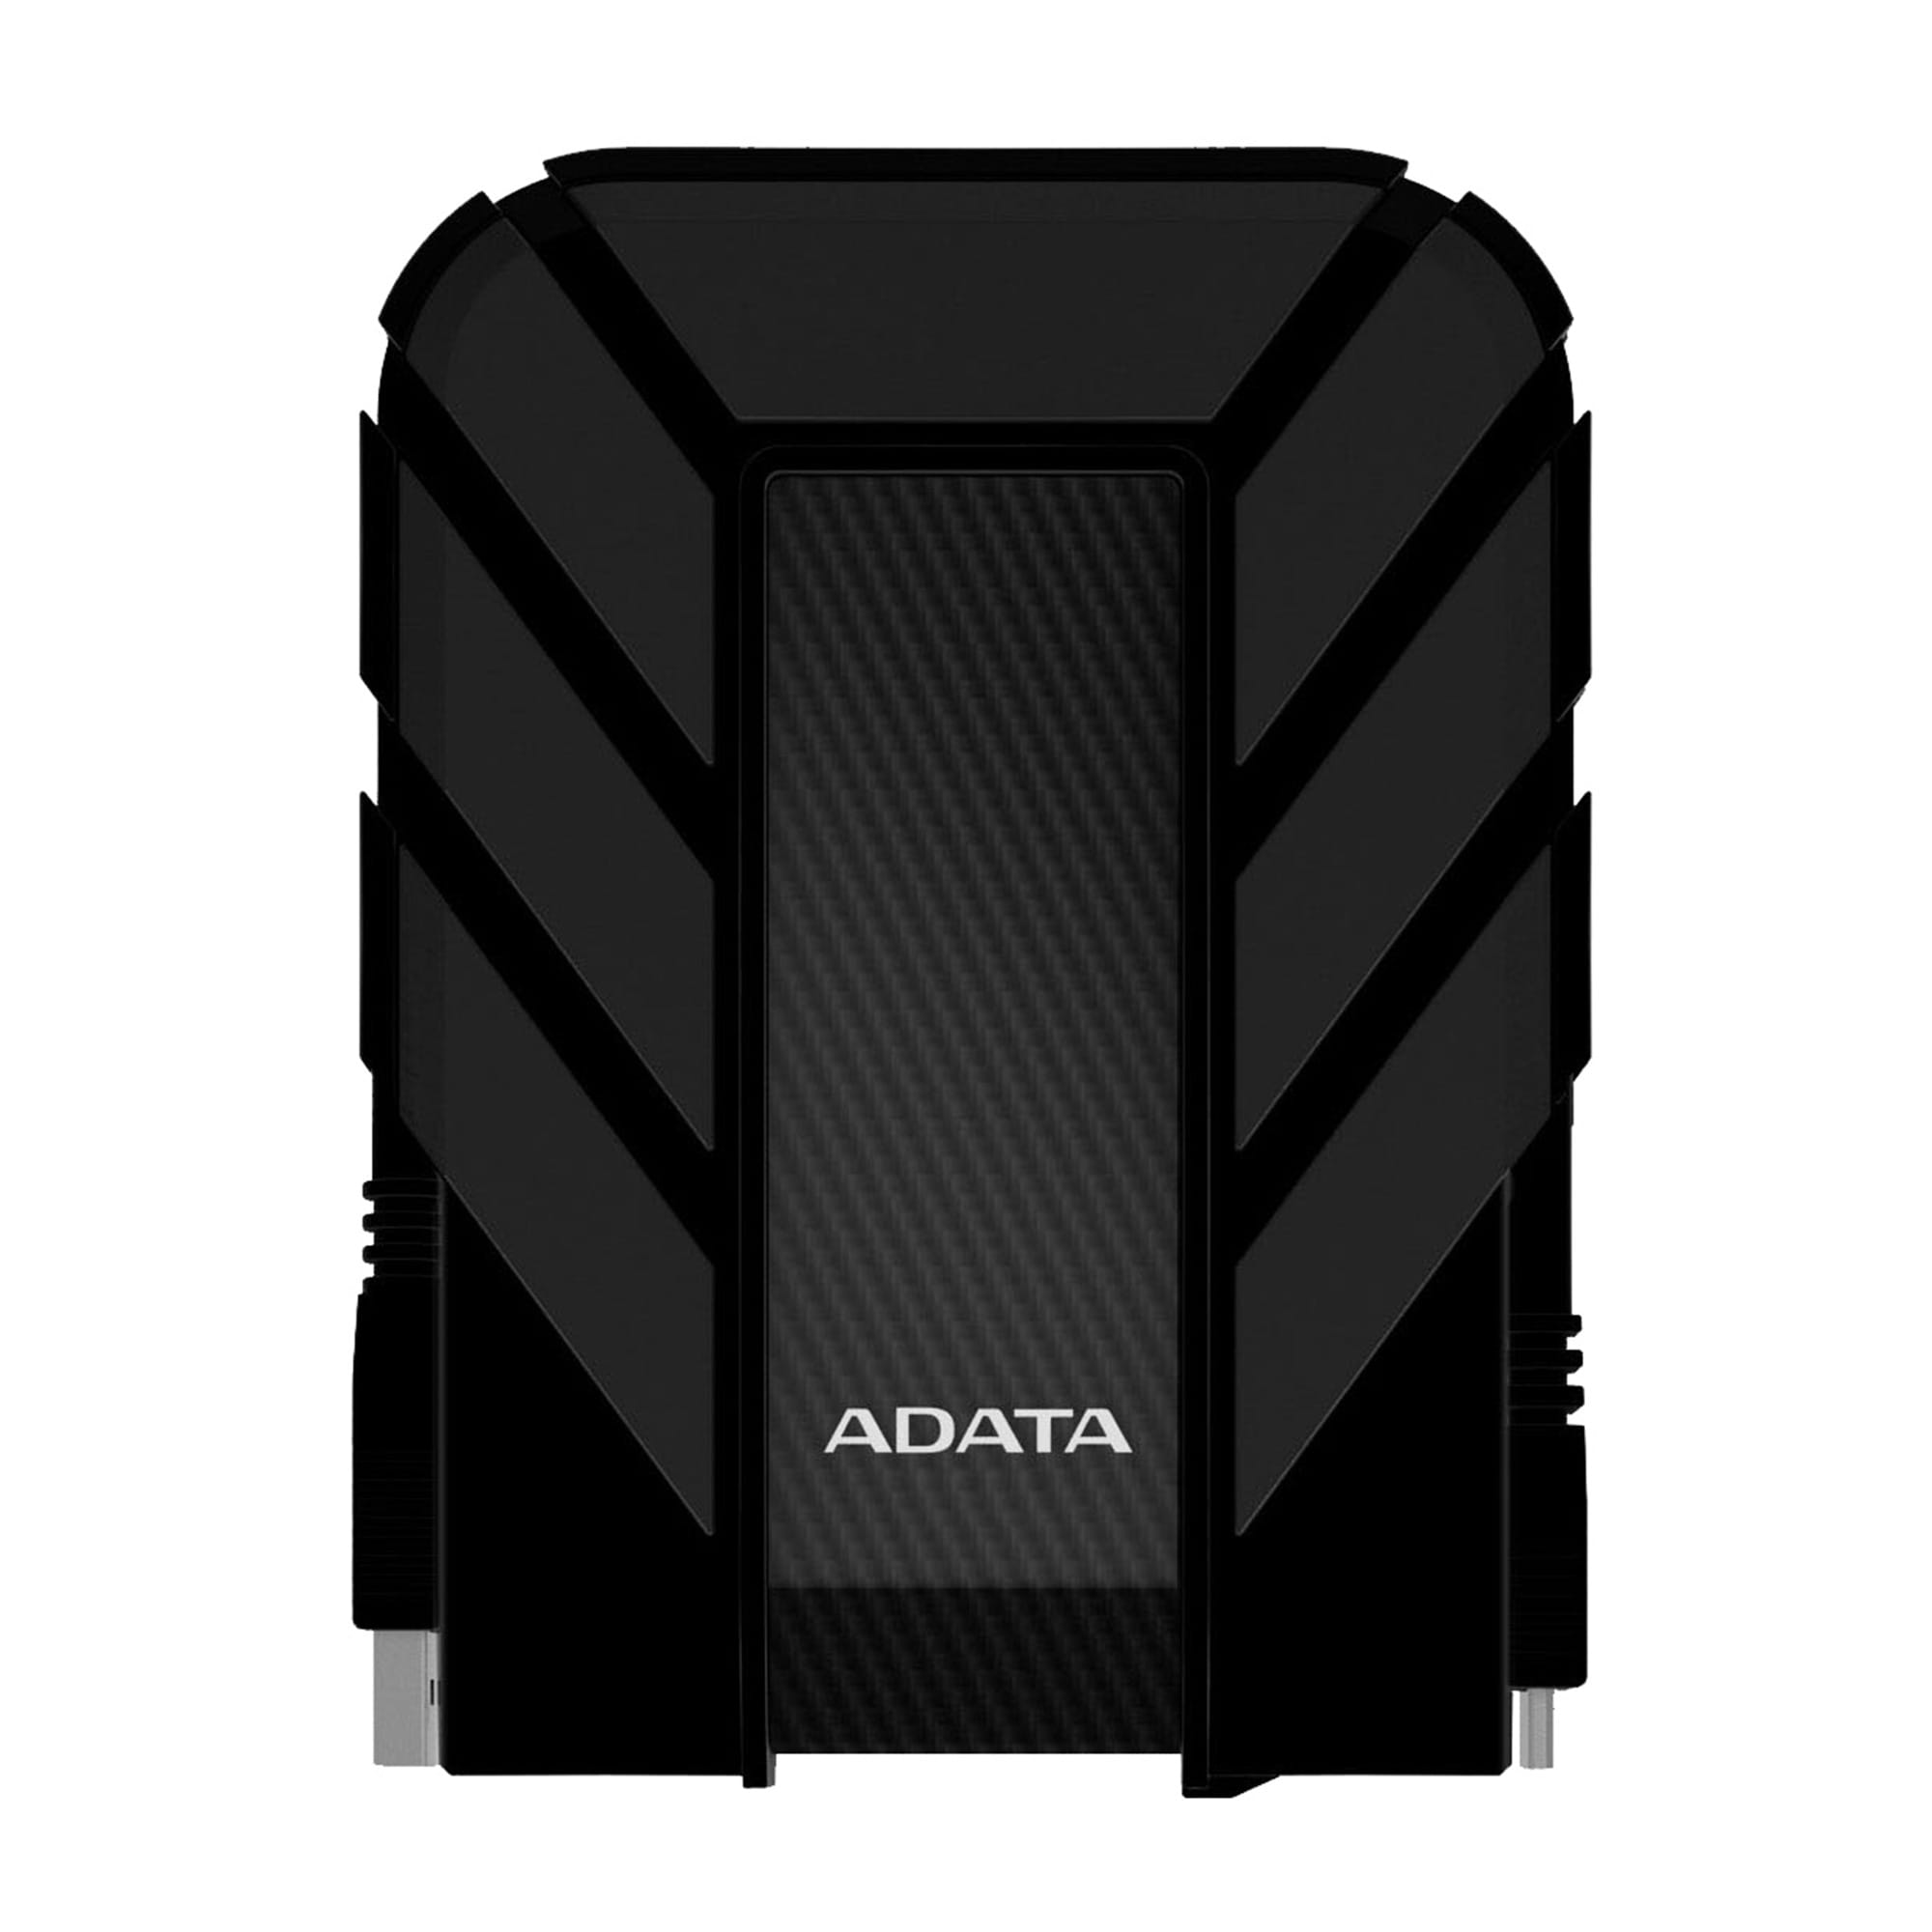 External HDD Adata HD710 Pro External Hard Drive USB 3.1 5TB Black